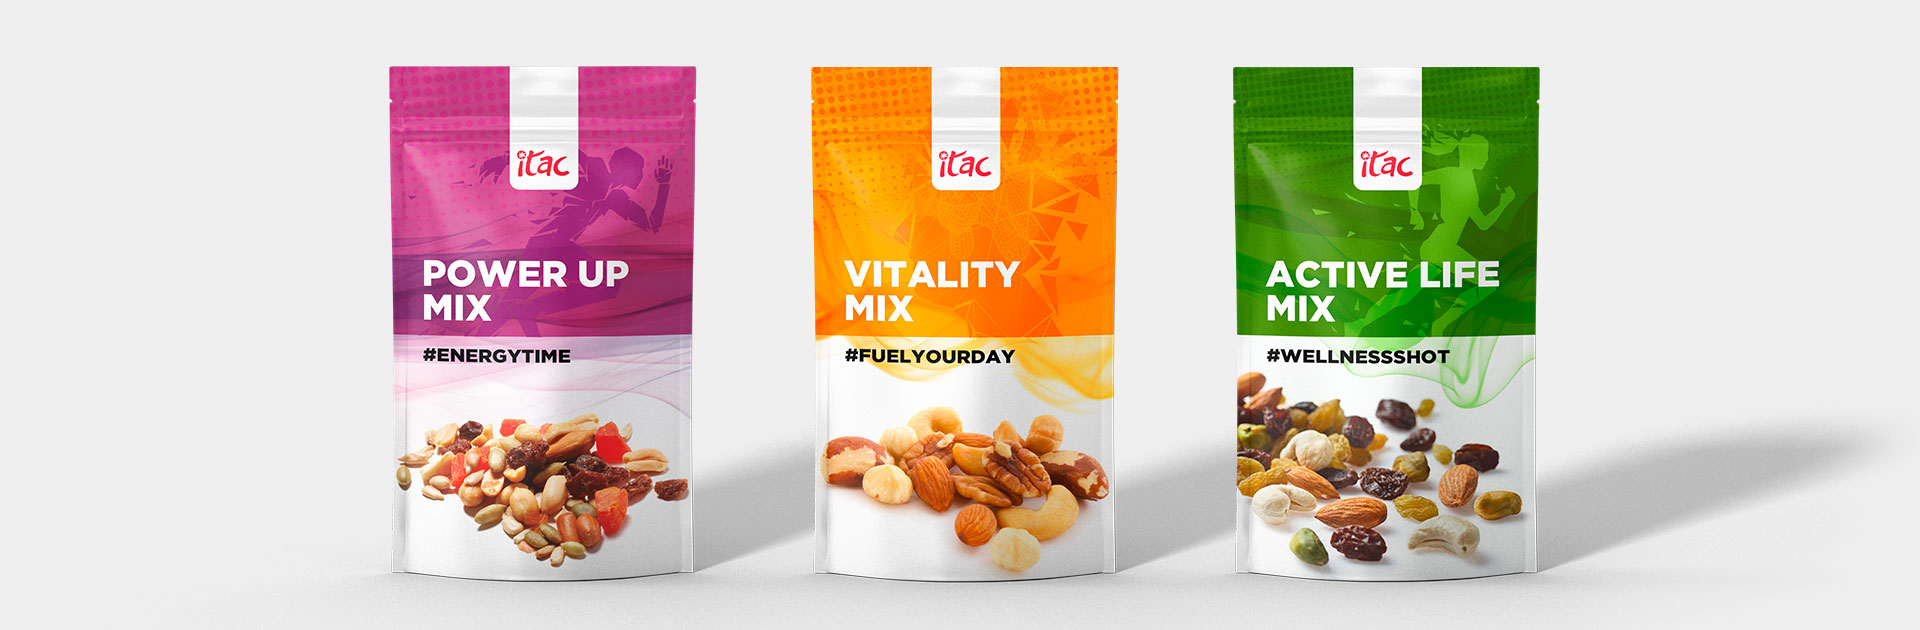 Booster Mix Nuts Perfect Snack Itac Food Fuel For Fast